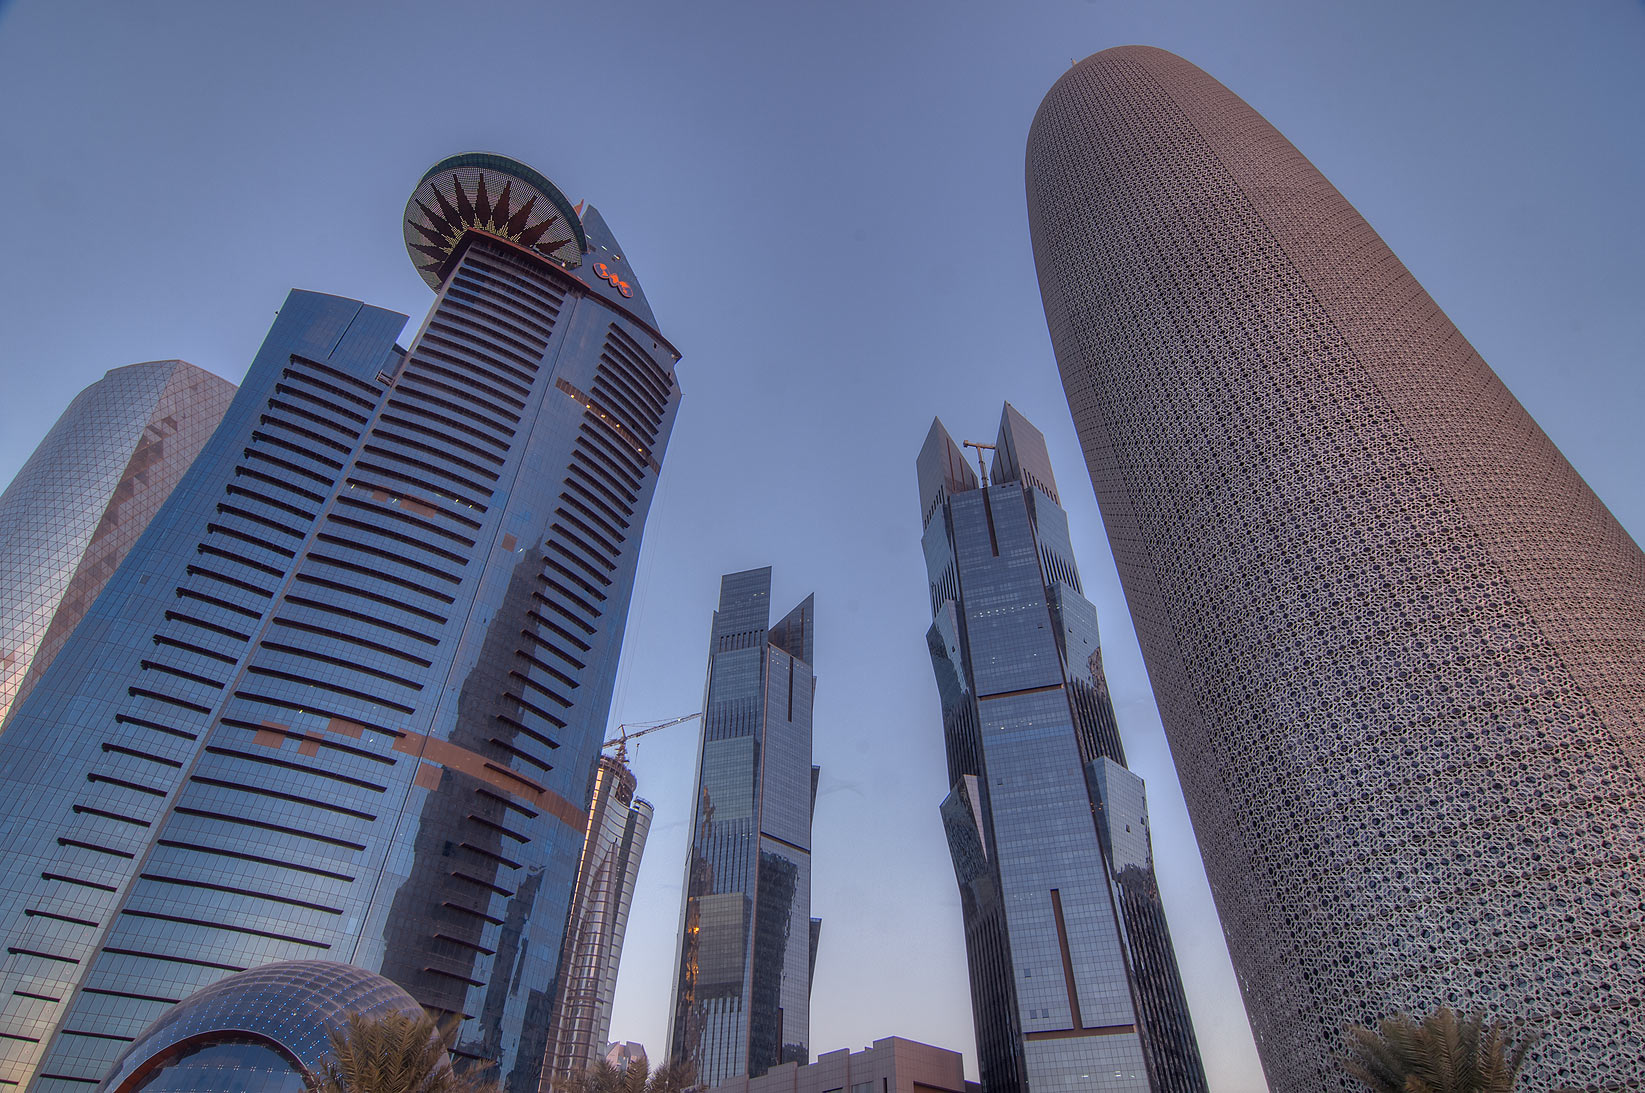 Area of WTC and Burj Qatar towers in West Bay from Corniche. Doha, Qatar